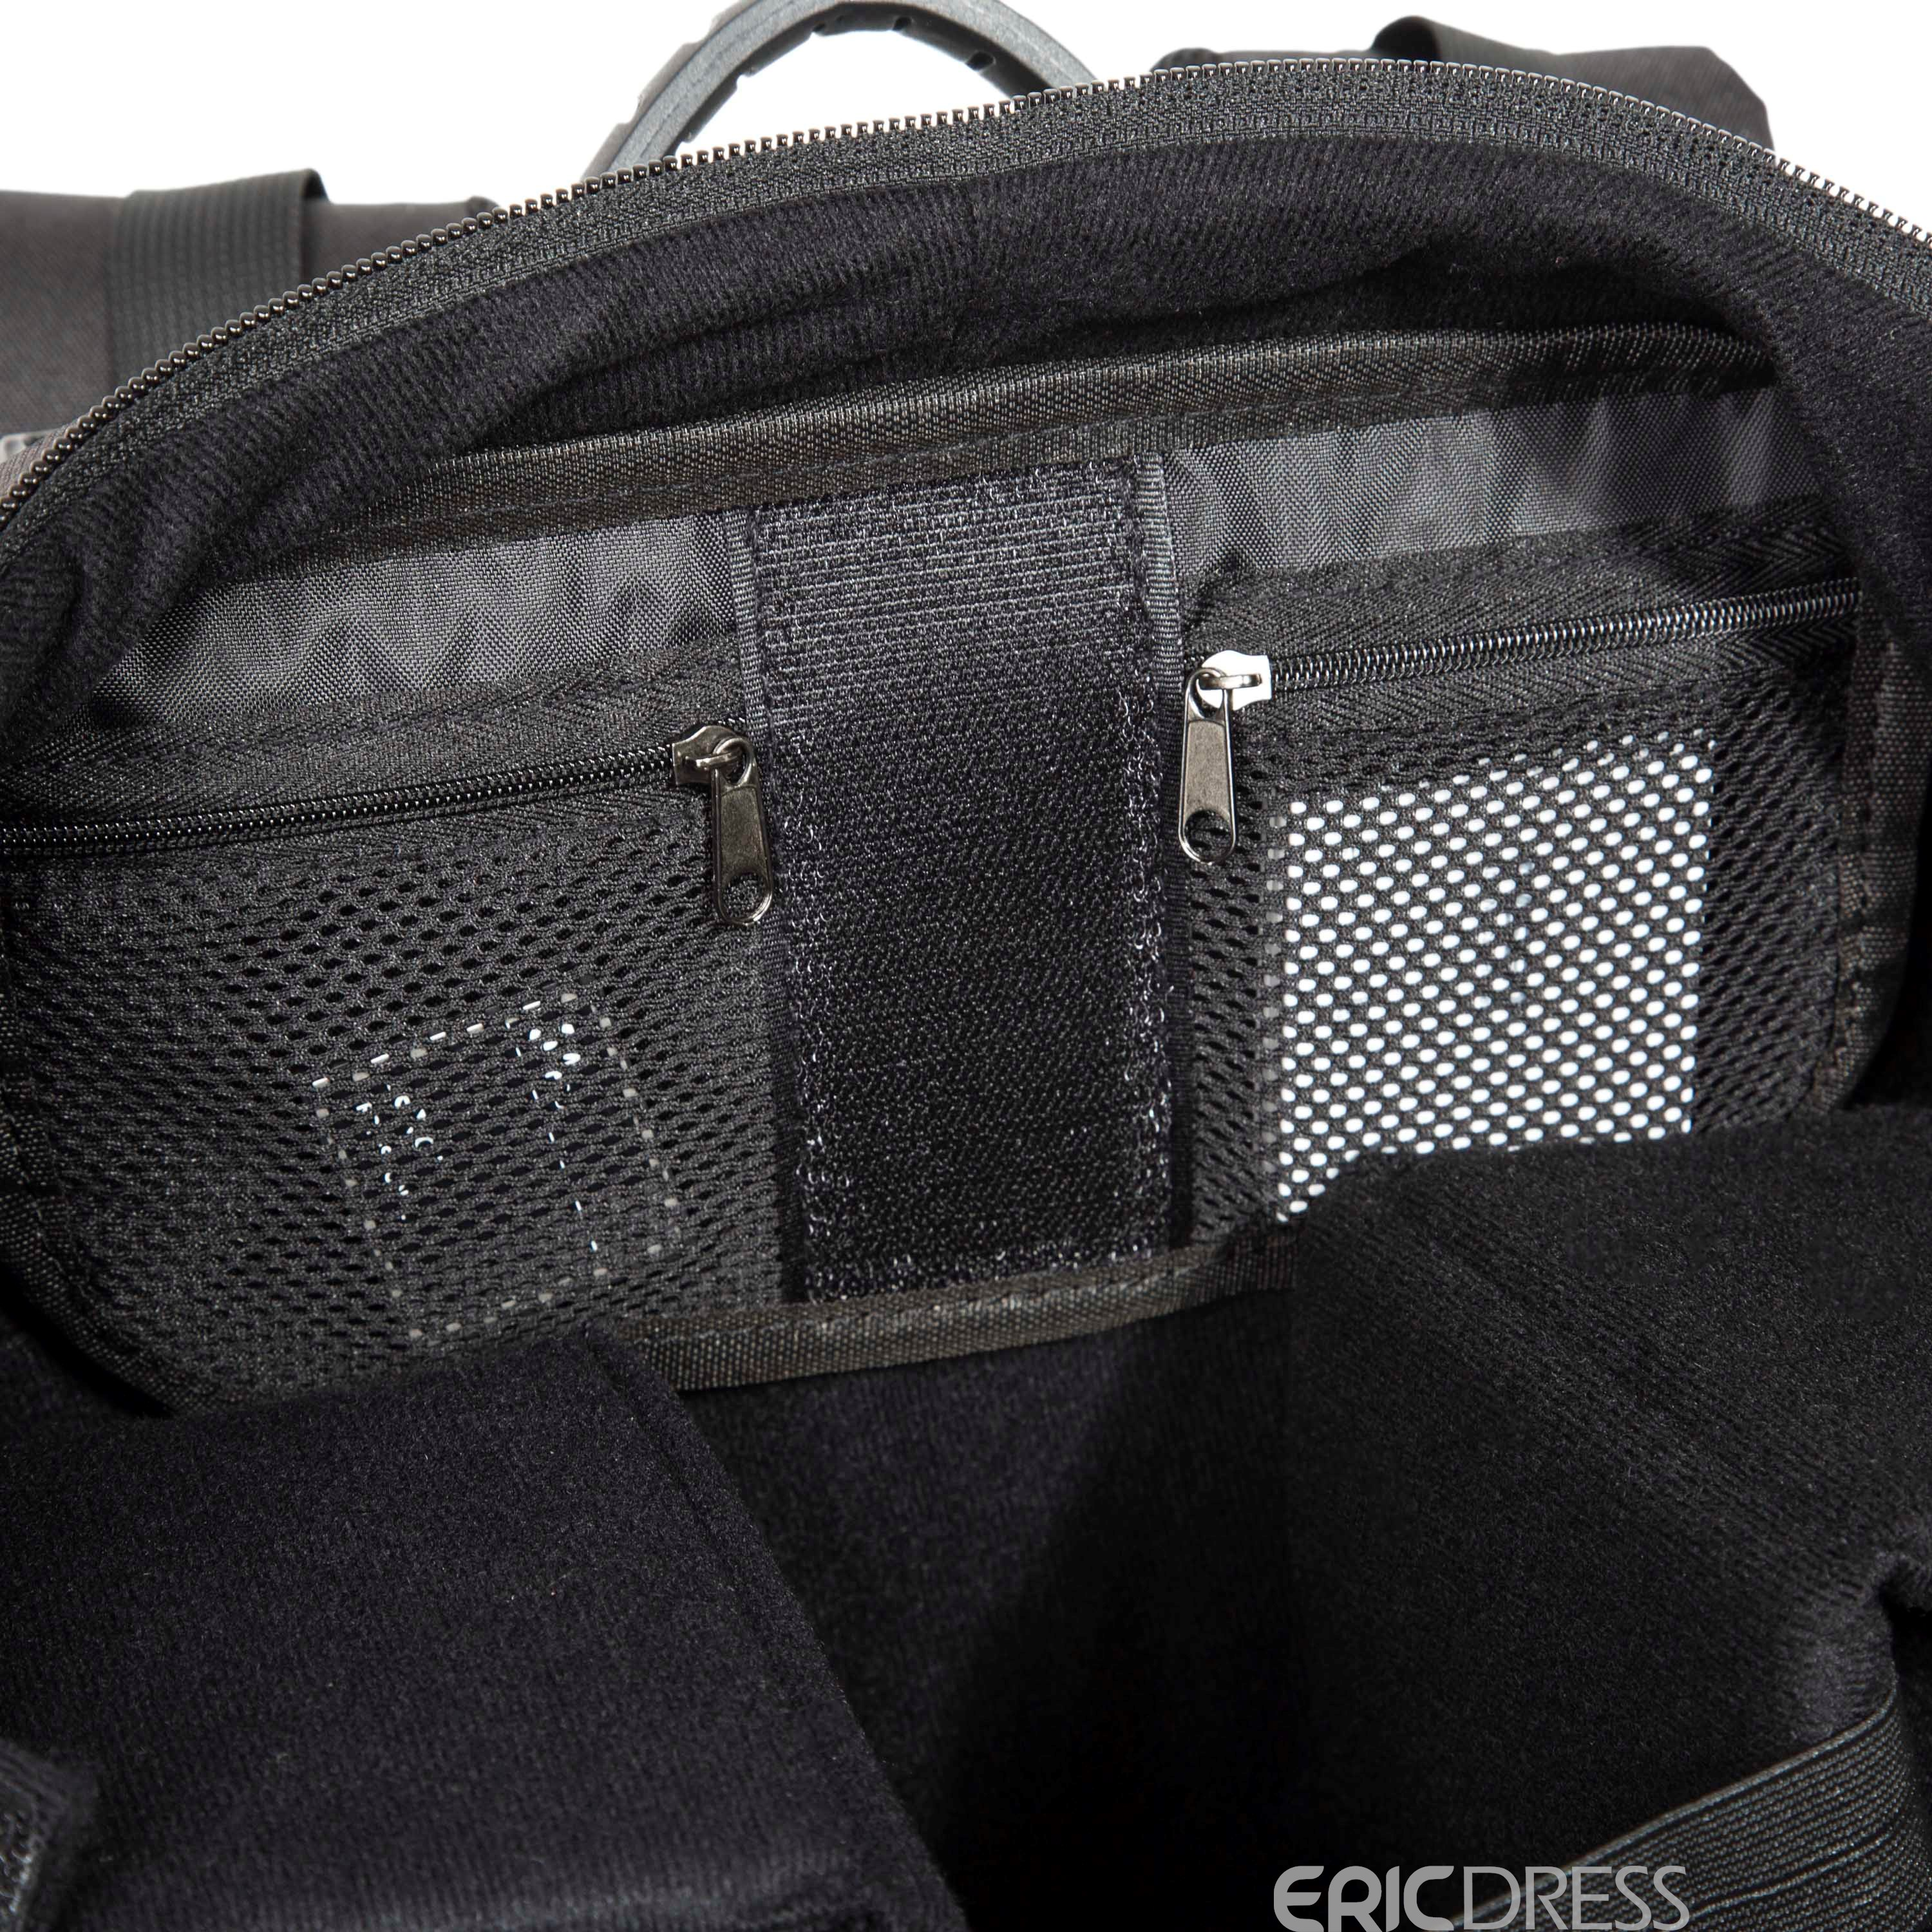 Ericdress SLR Camera Waterproof Nylon Camera Bags